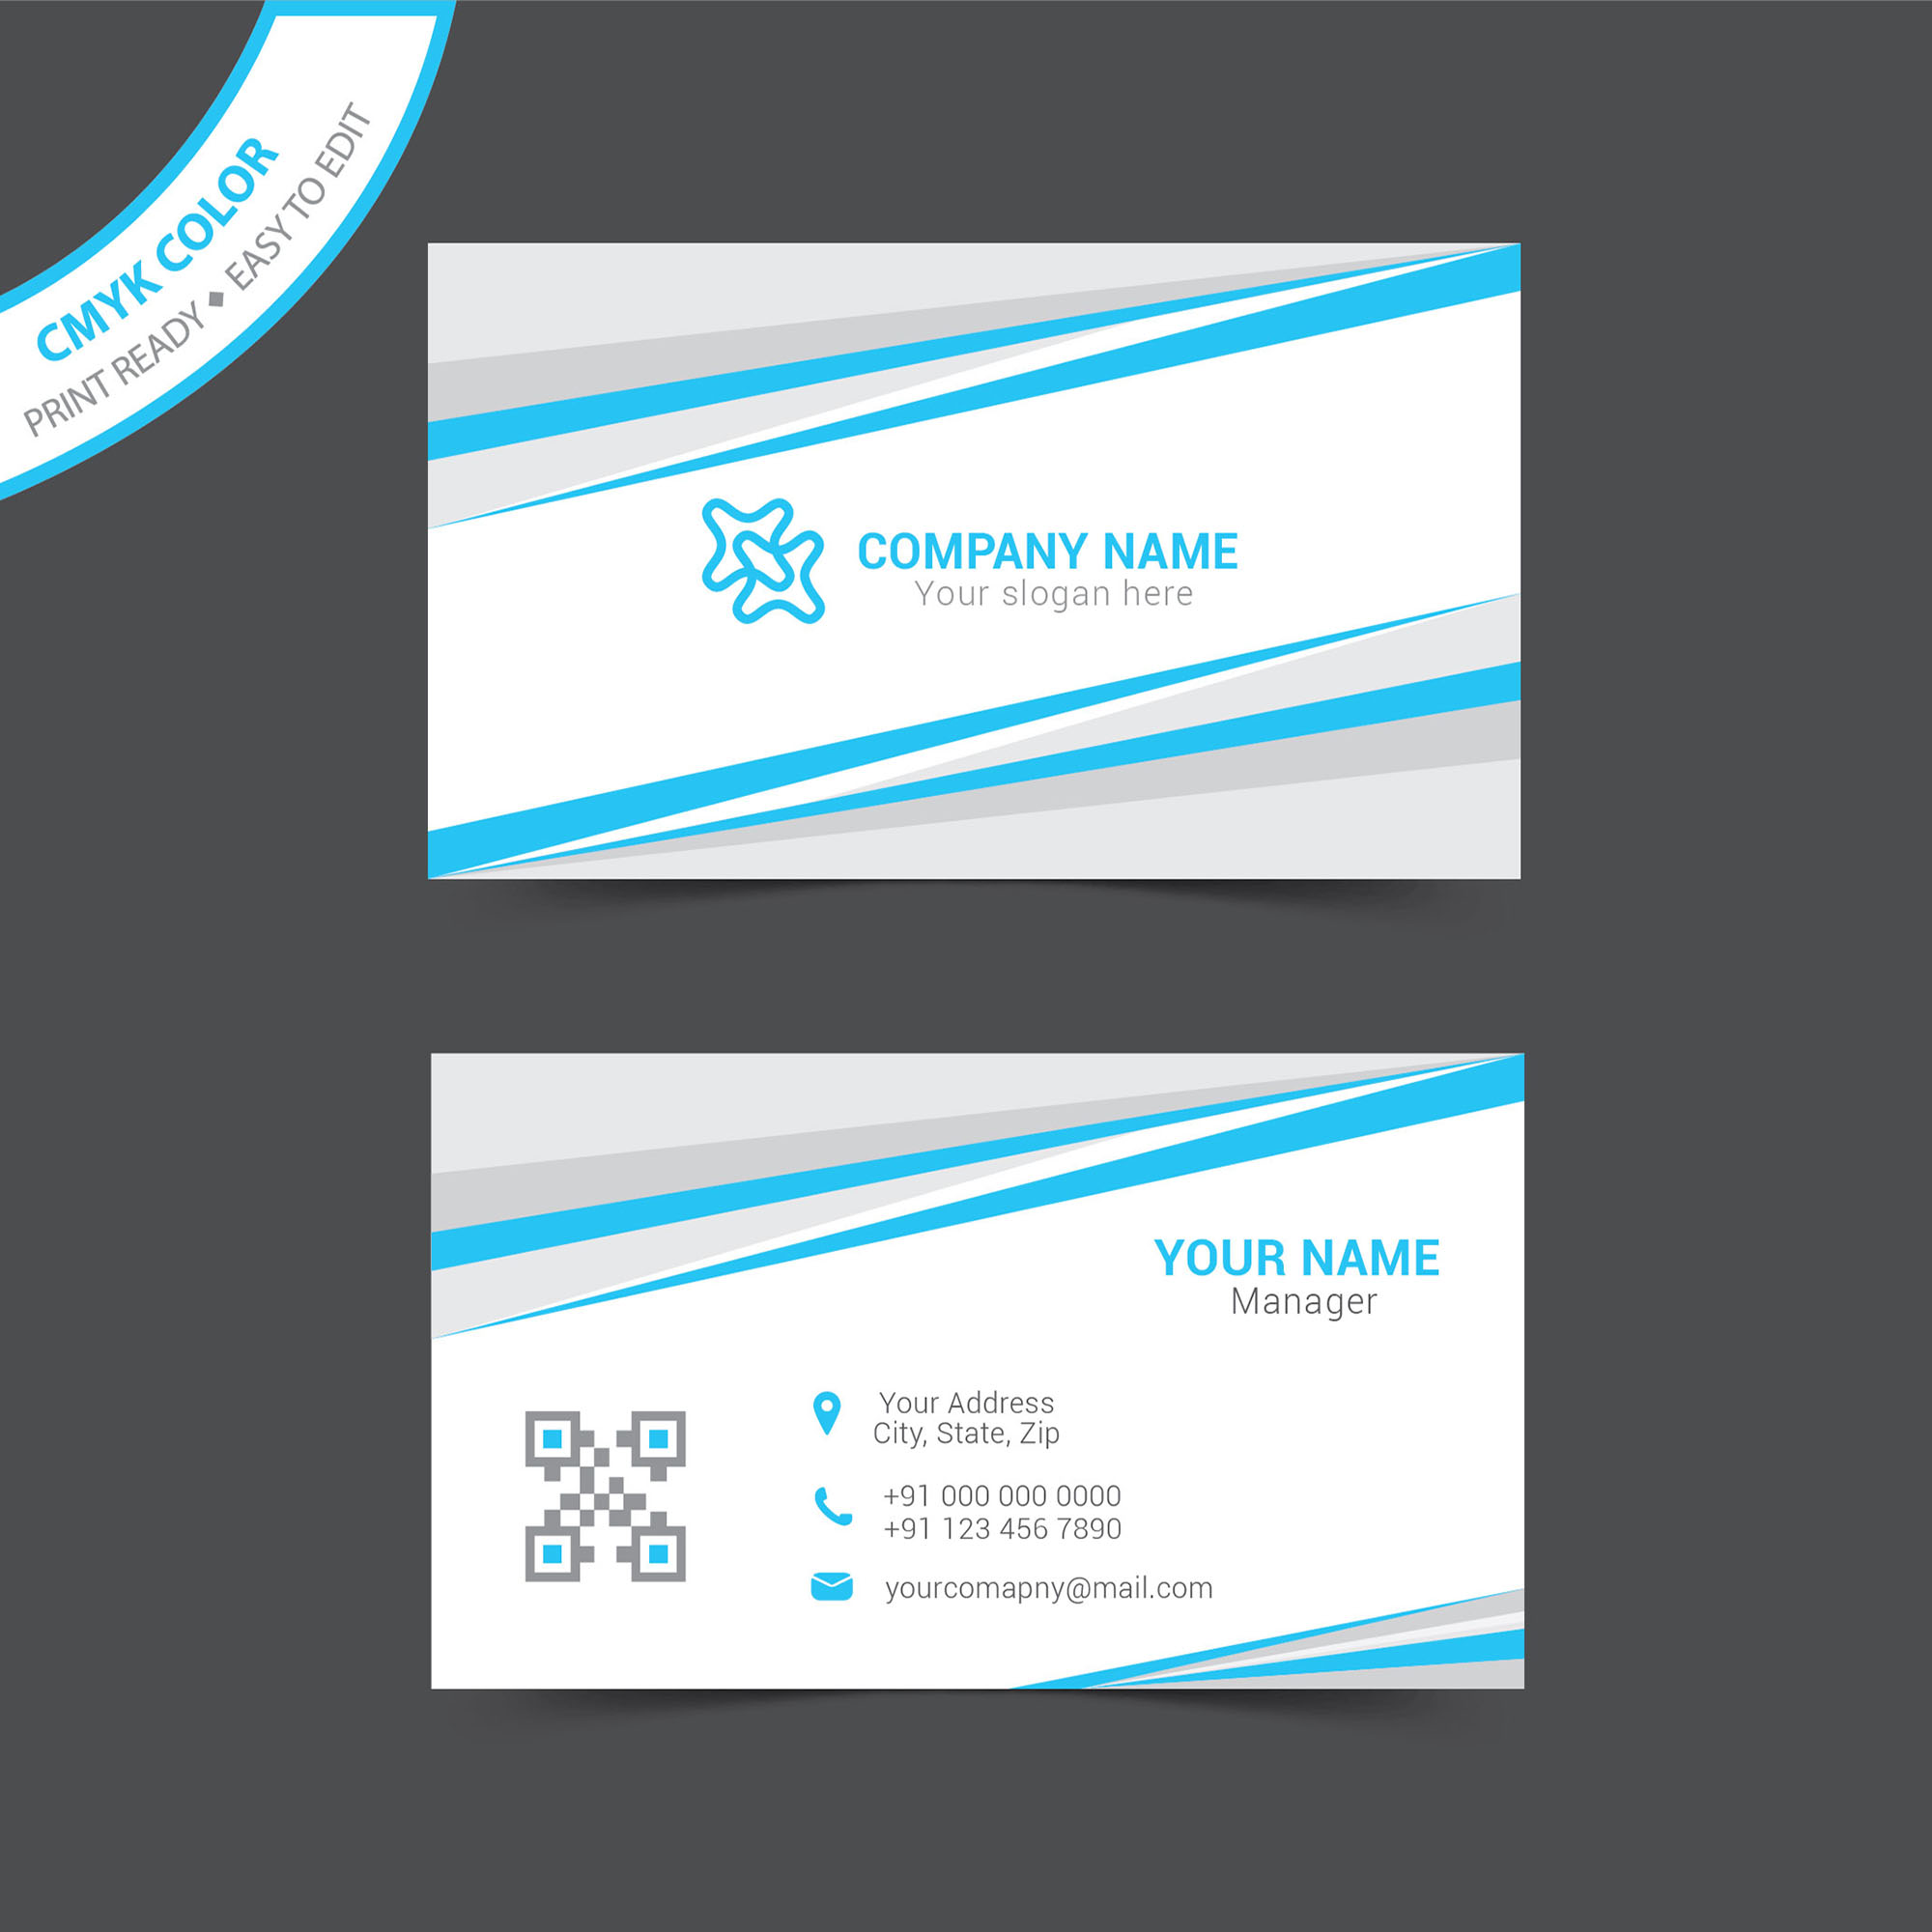 Simple business card template free download wisxi business card business cards business card design business card template design templates reheart Choice Image